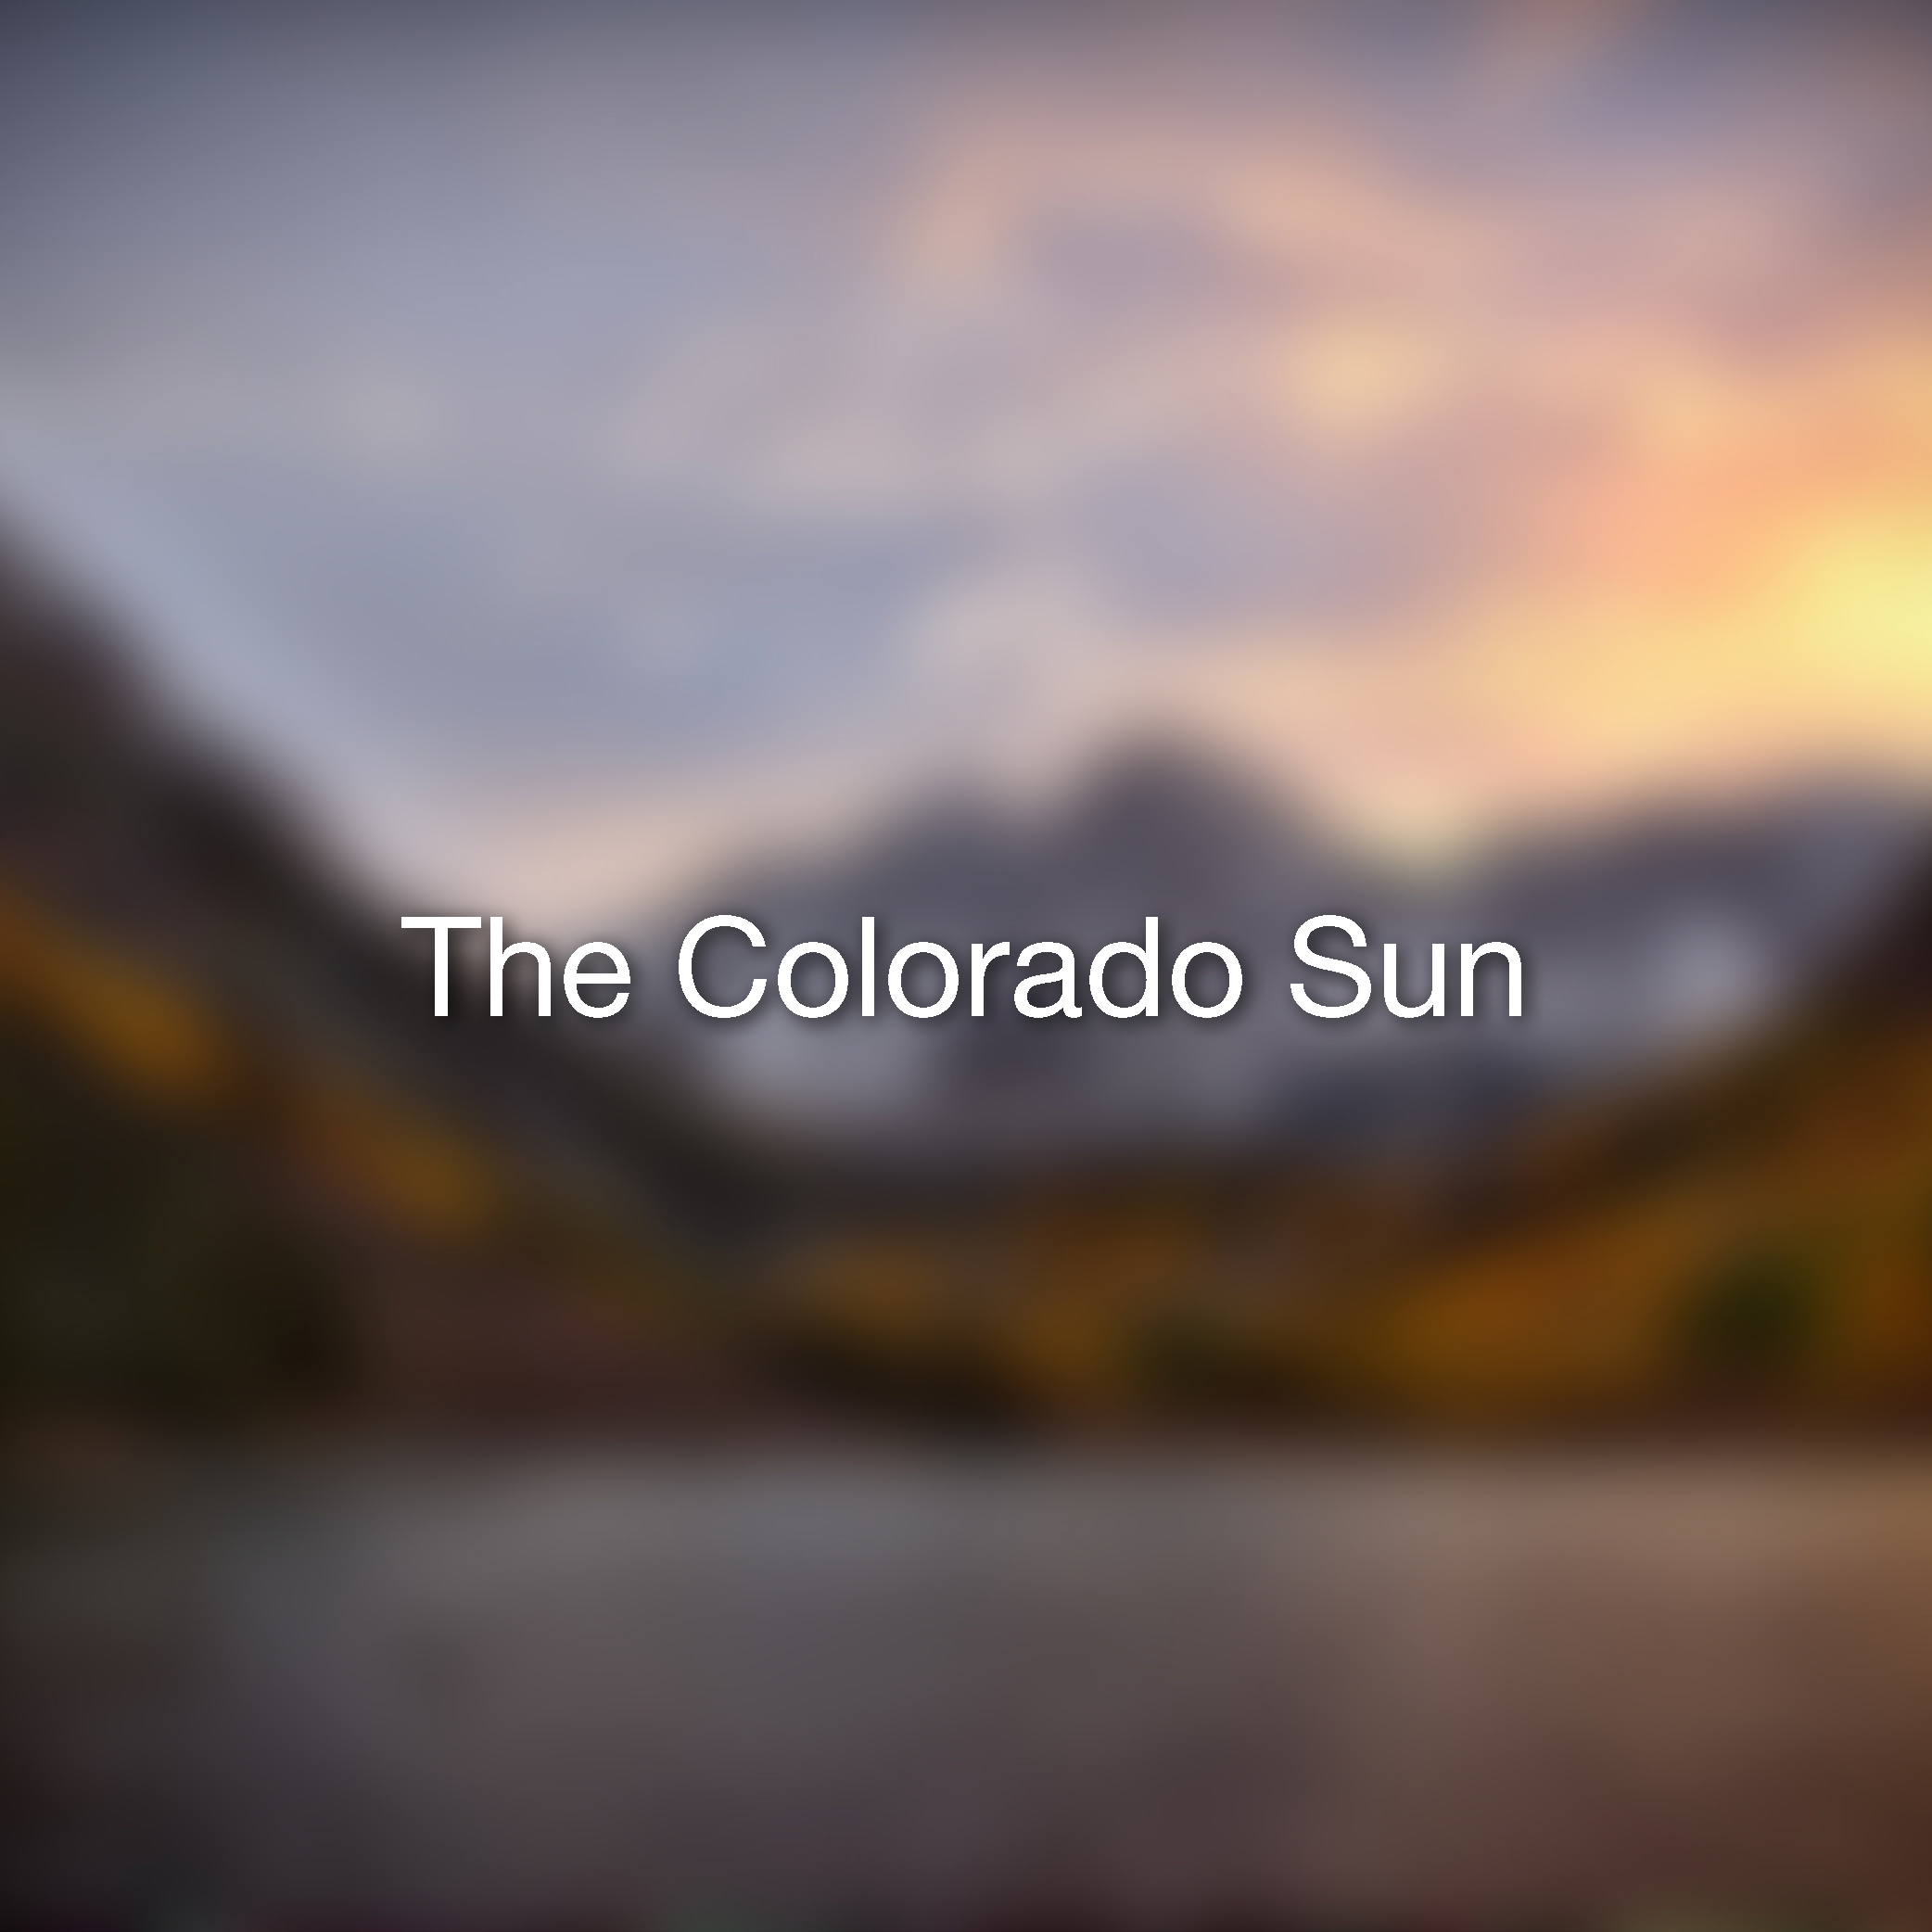 The Colorado Sun